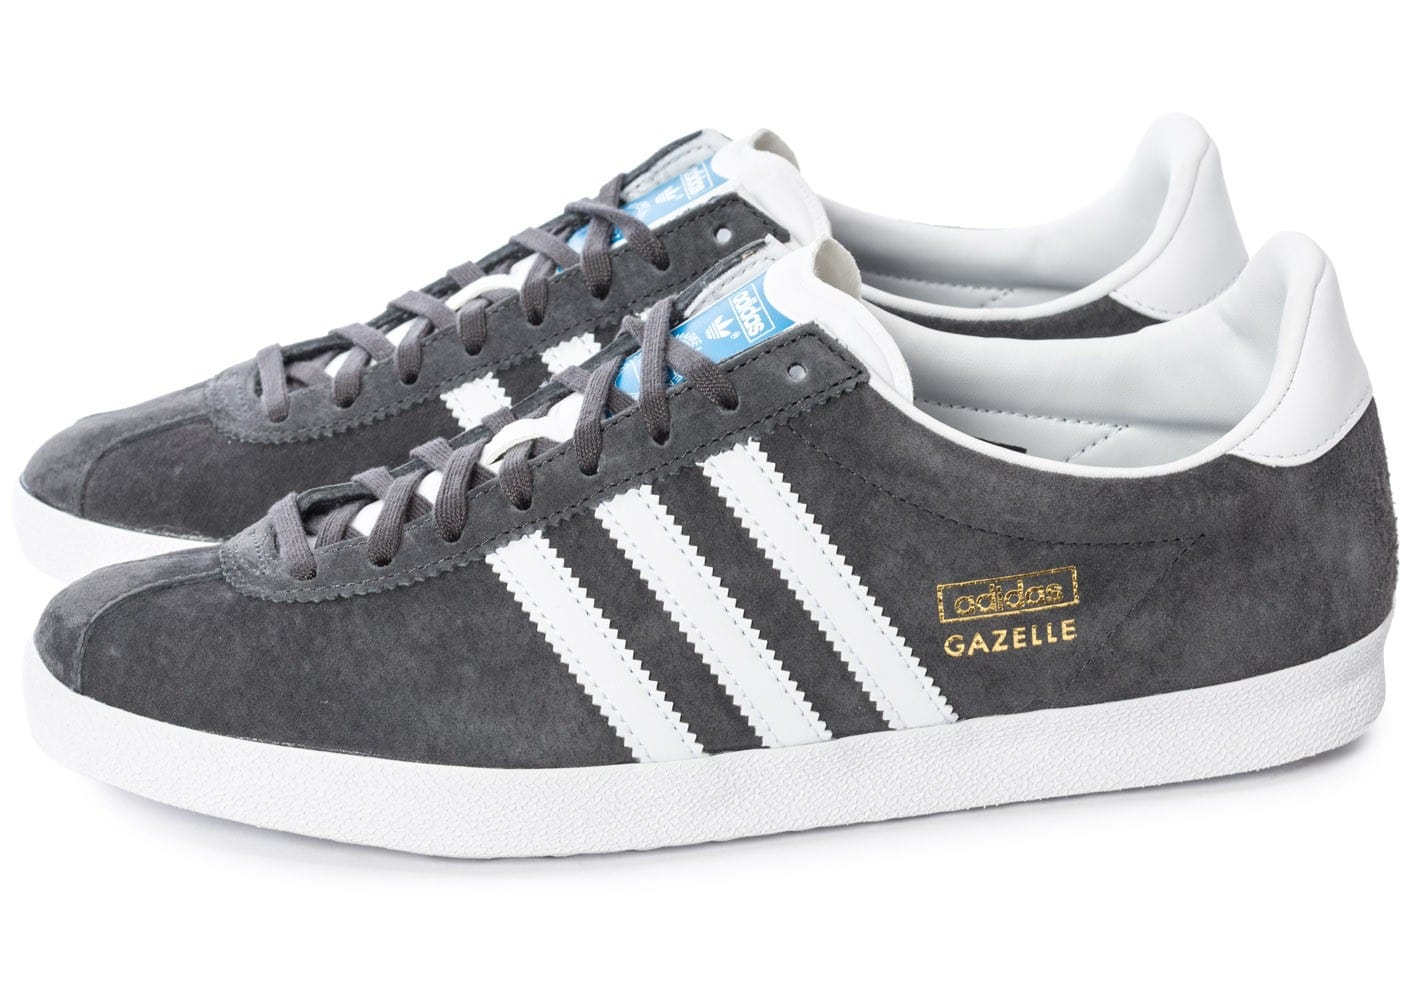 top quality new product best gazelle og adidas femme